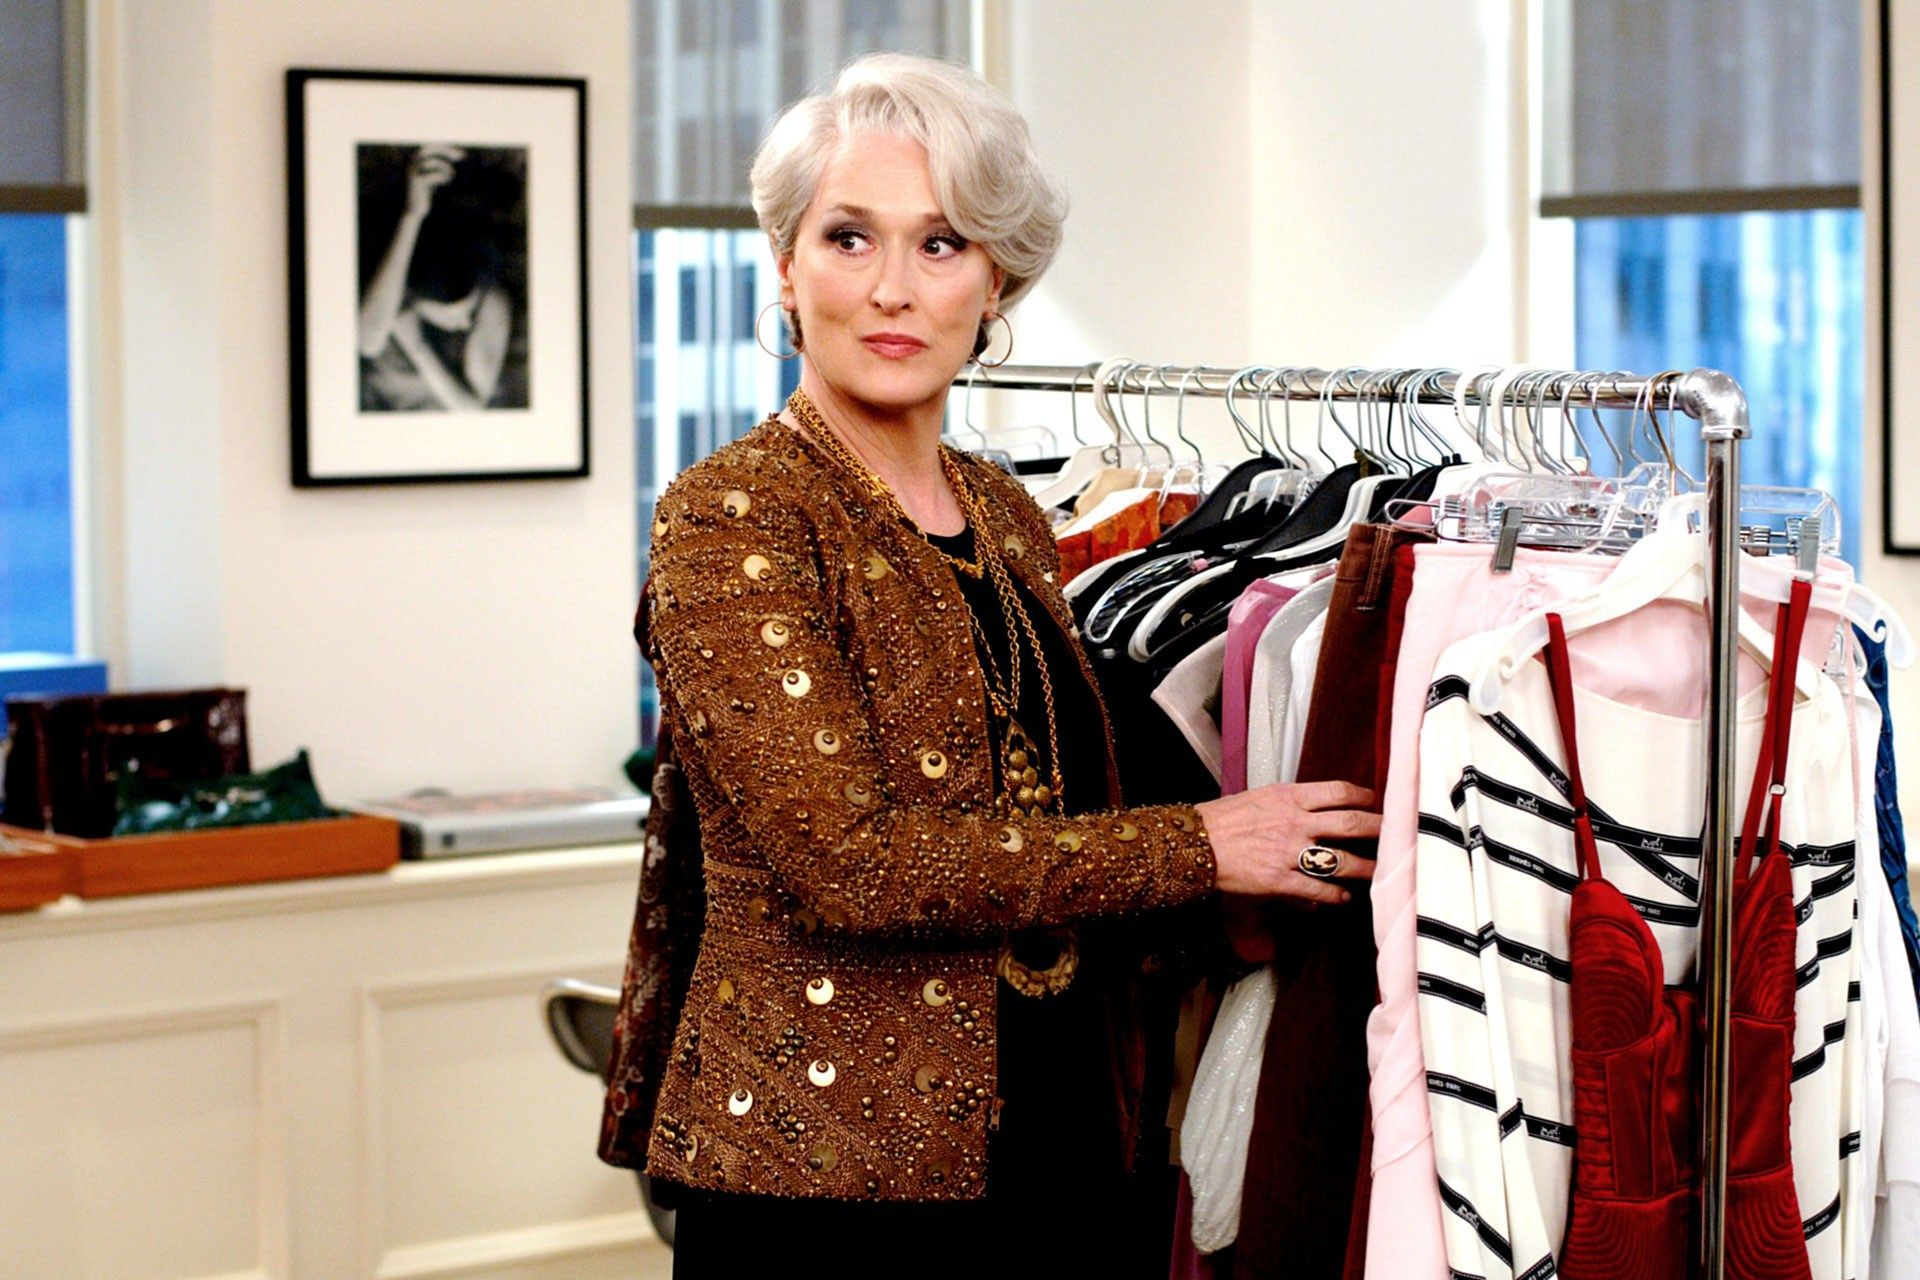 The devil wears Prada: 7 things in the wardrobe of a business woman